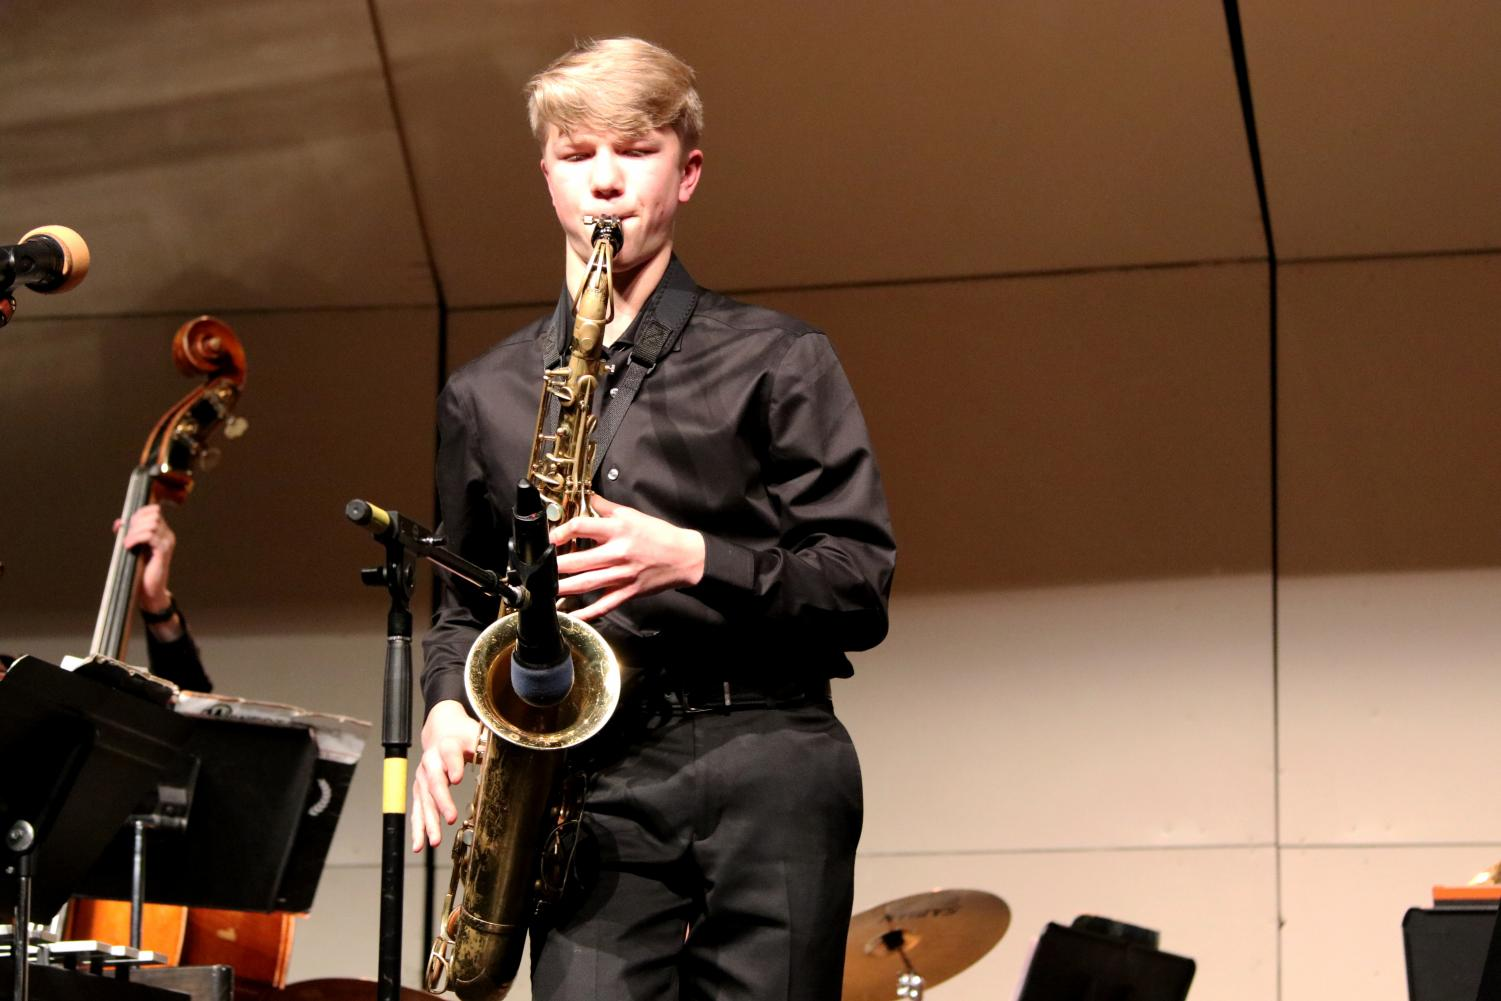 Saxophonist+Aaron+Rutherford+lets+loose+an+improved+solo+during+the+first+piece.